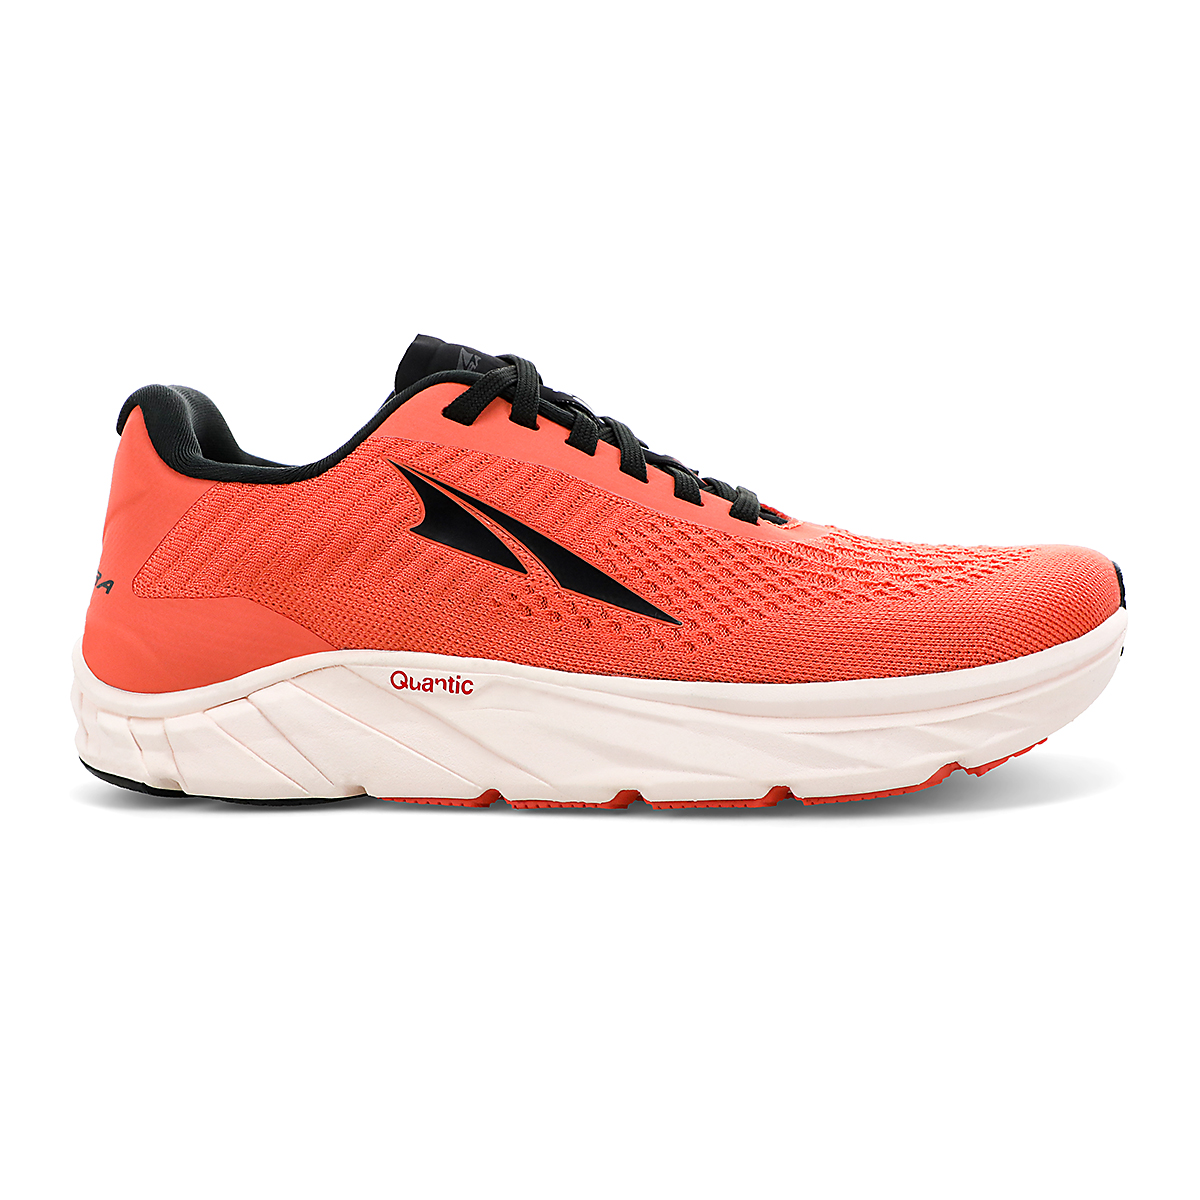 Women's Altra Torin 4.5 Plush Running Shoe - Color: Coral - Size: 5.5 - Width: Regular, Coral, large, image 1